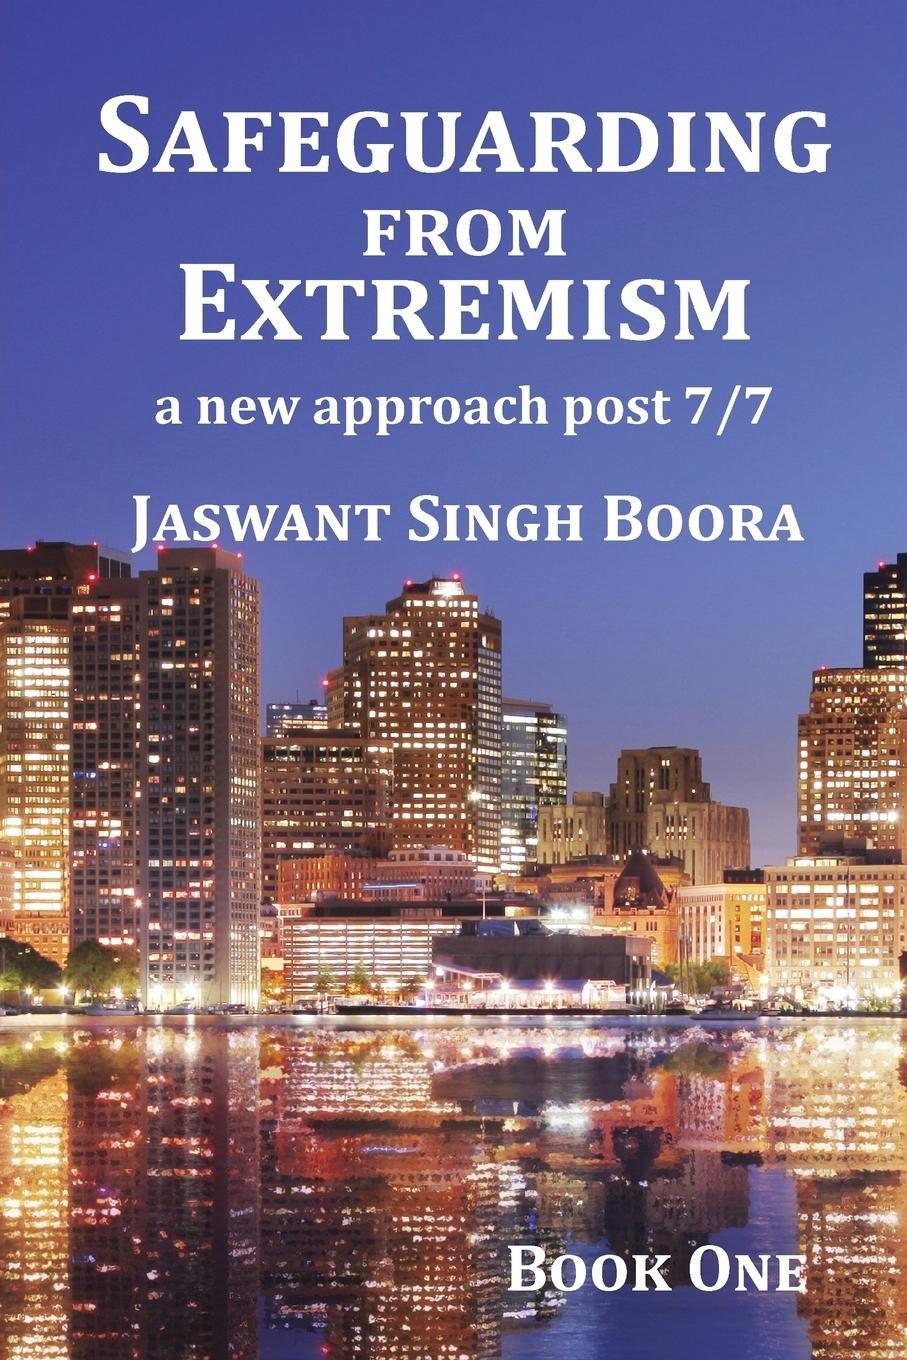 Safeguarding from extremism: a new approach post 7/7 PDF